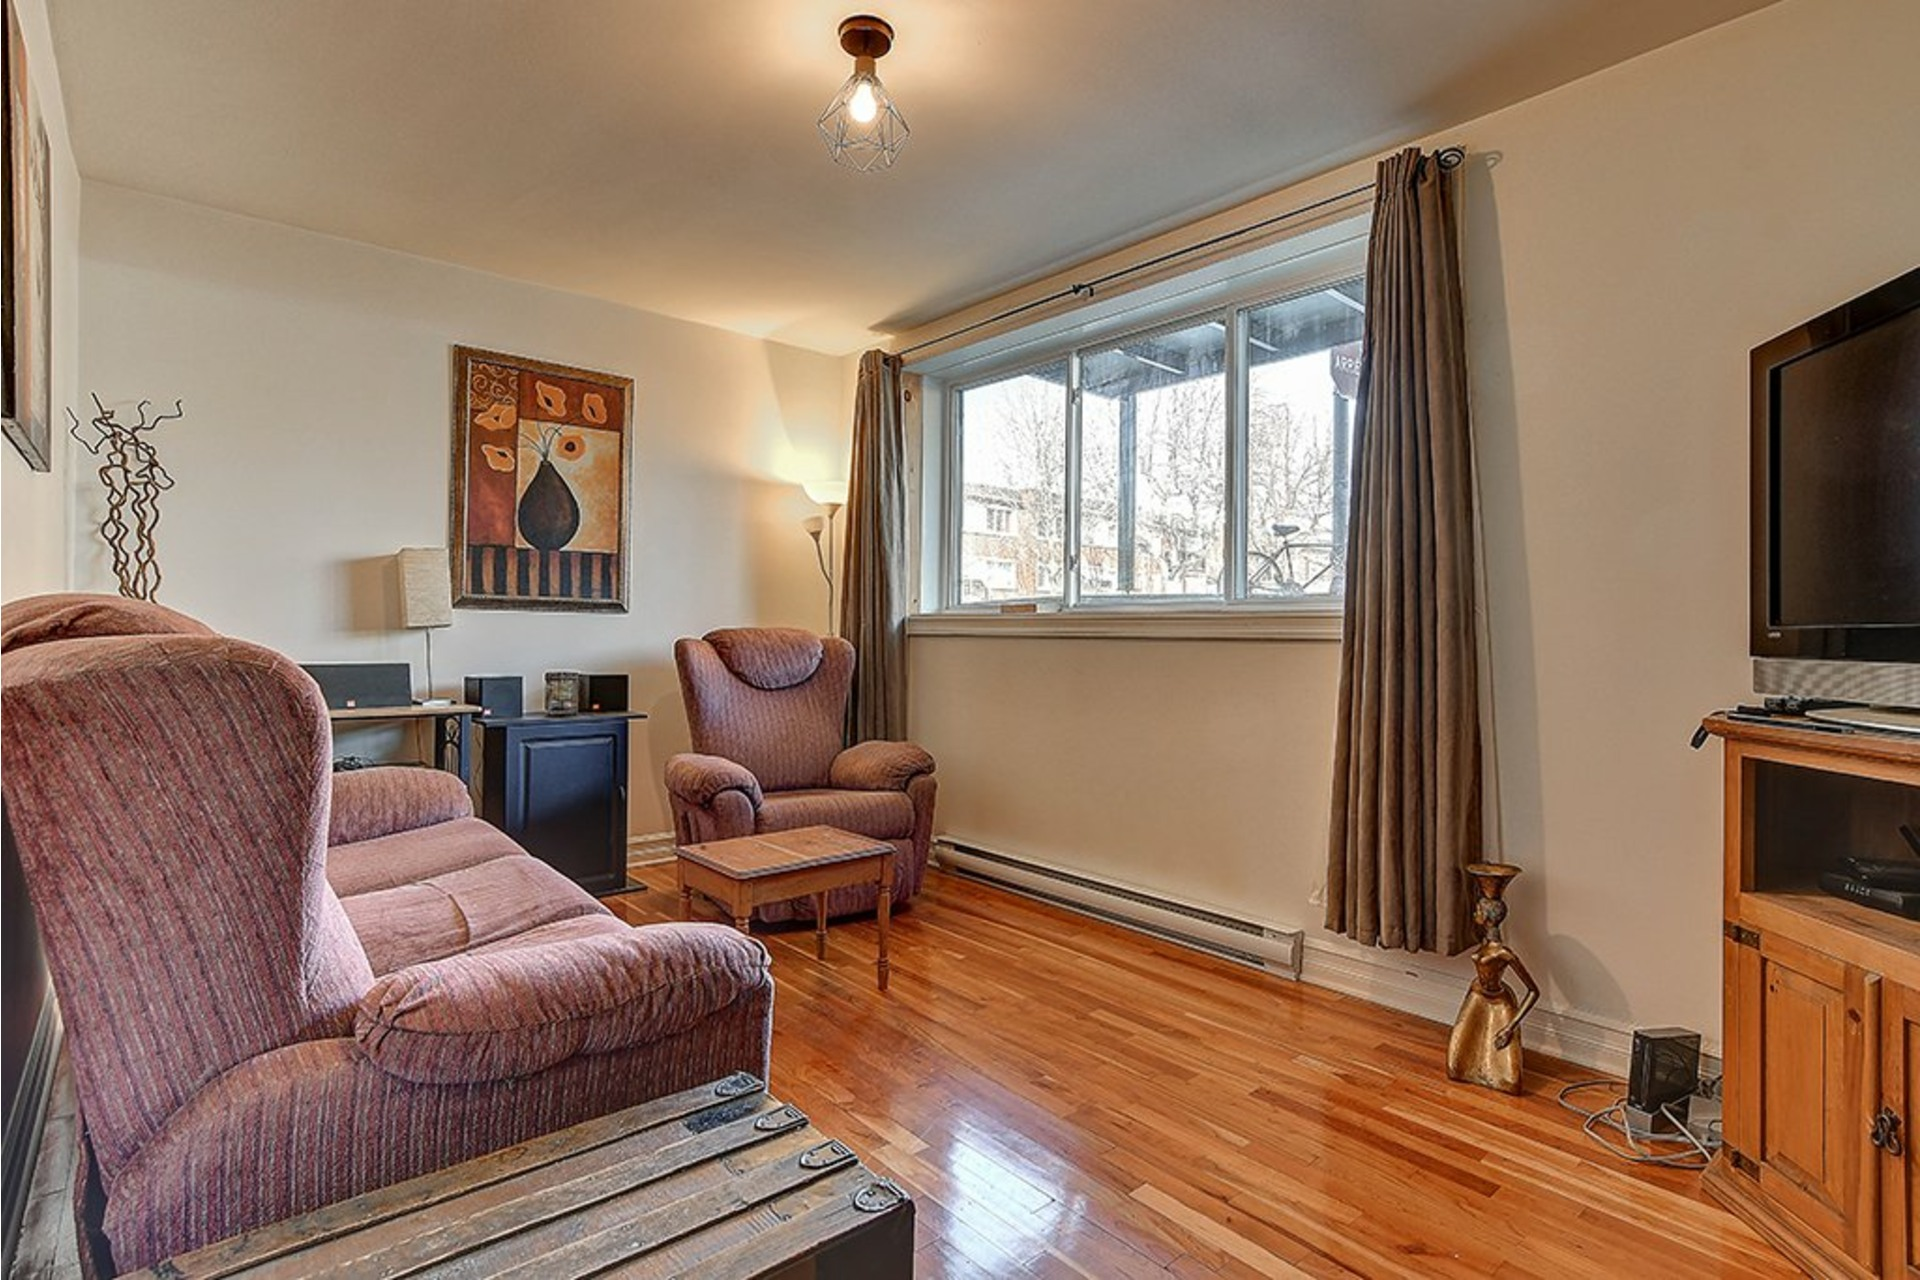 image 17 - Income property For sale Le Sud-Ouest Montréal  - 4 rooms